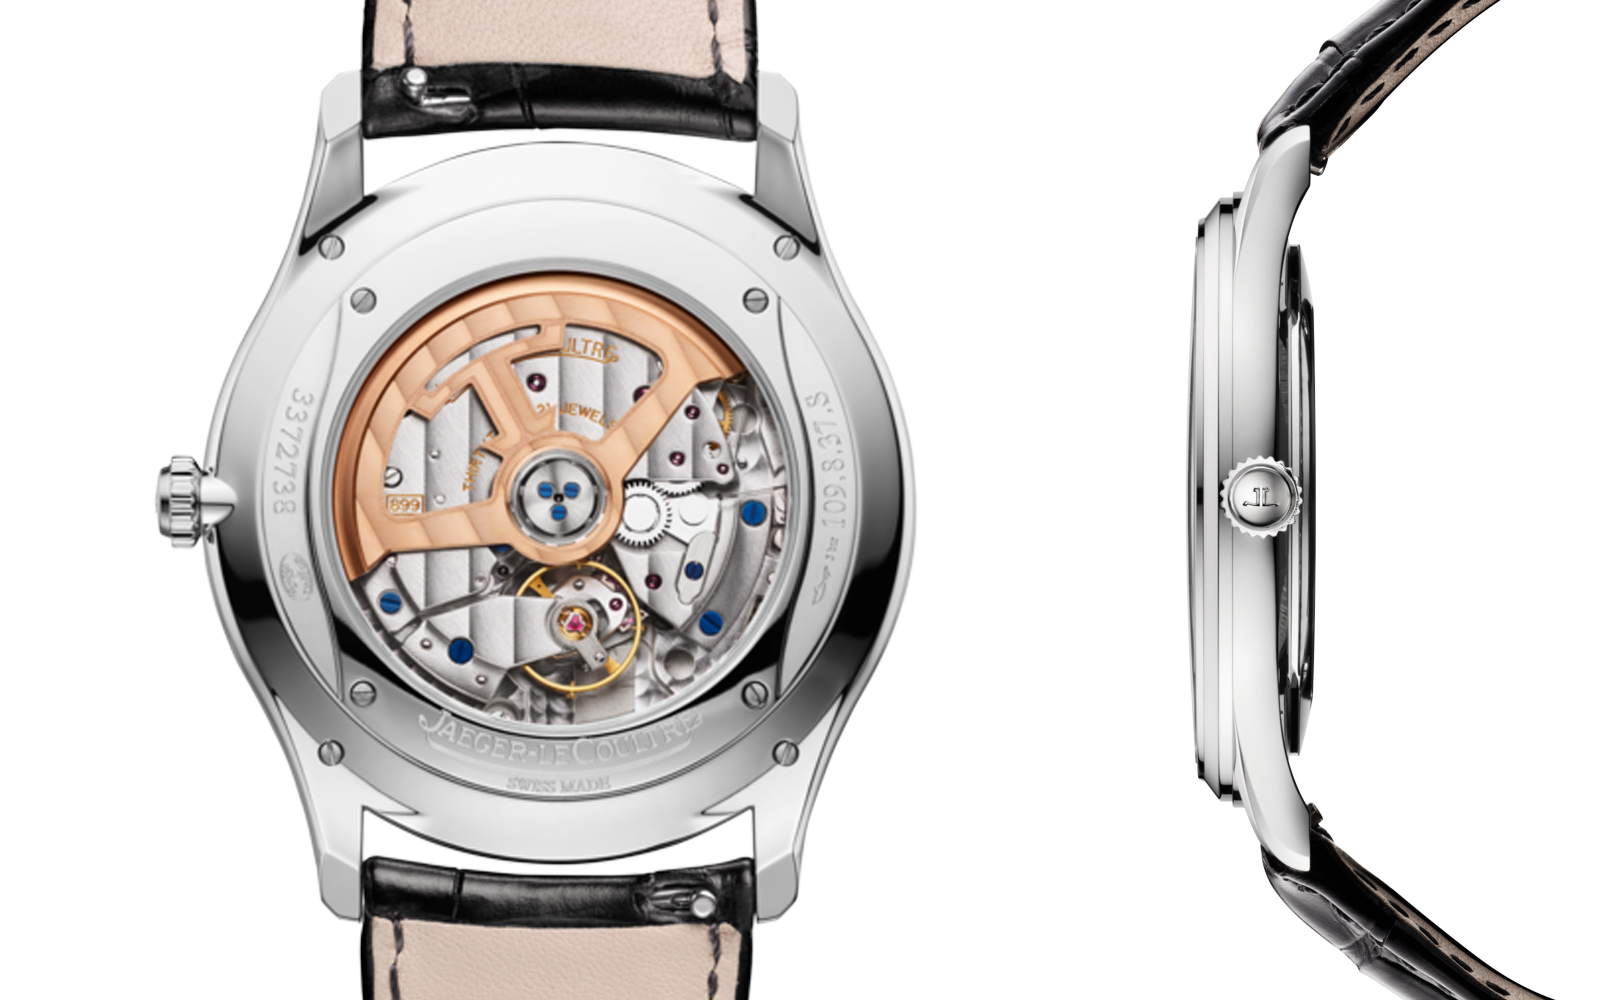 MASTER ULTRA THIN DATE 1238420 - feature